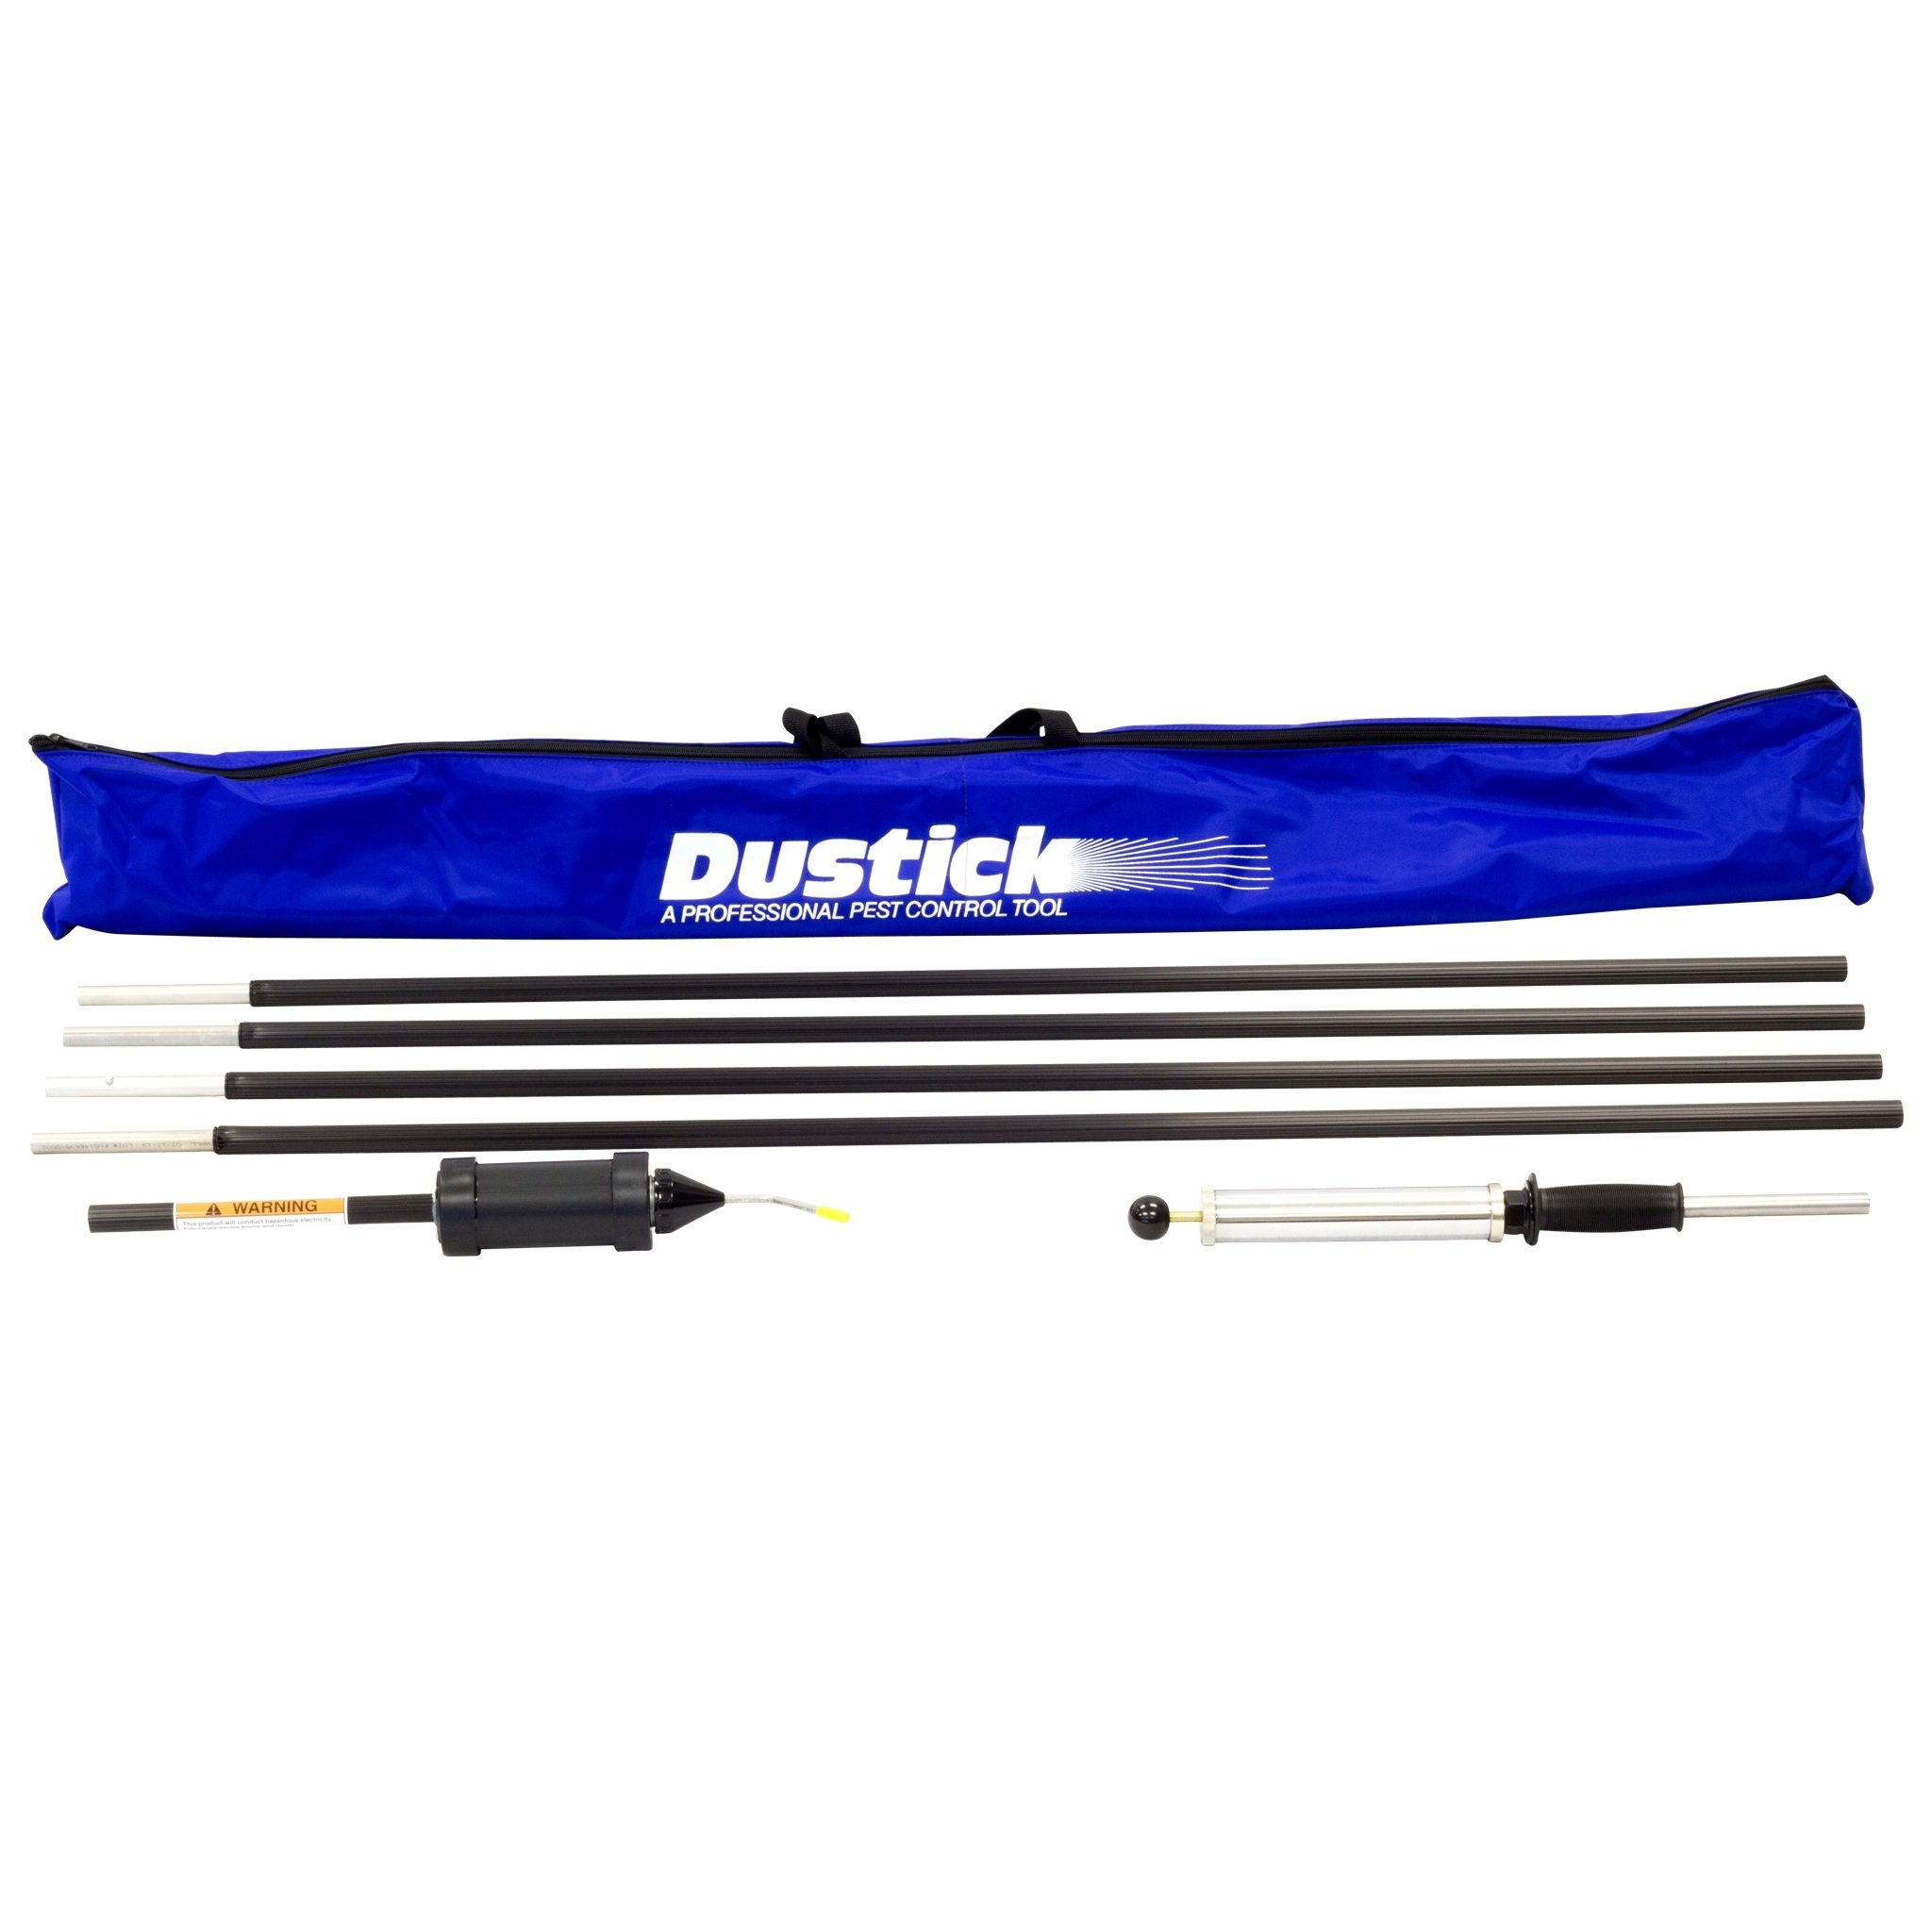 Dustick Duster (with 21-foot reach) by Advantage Products